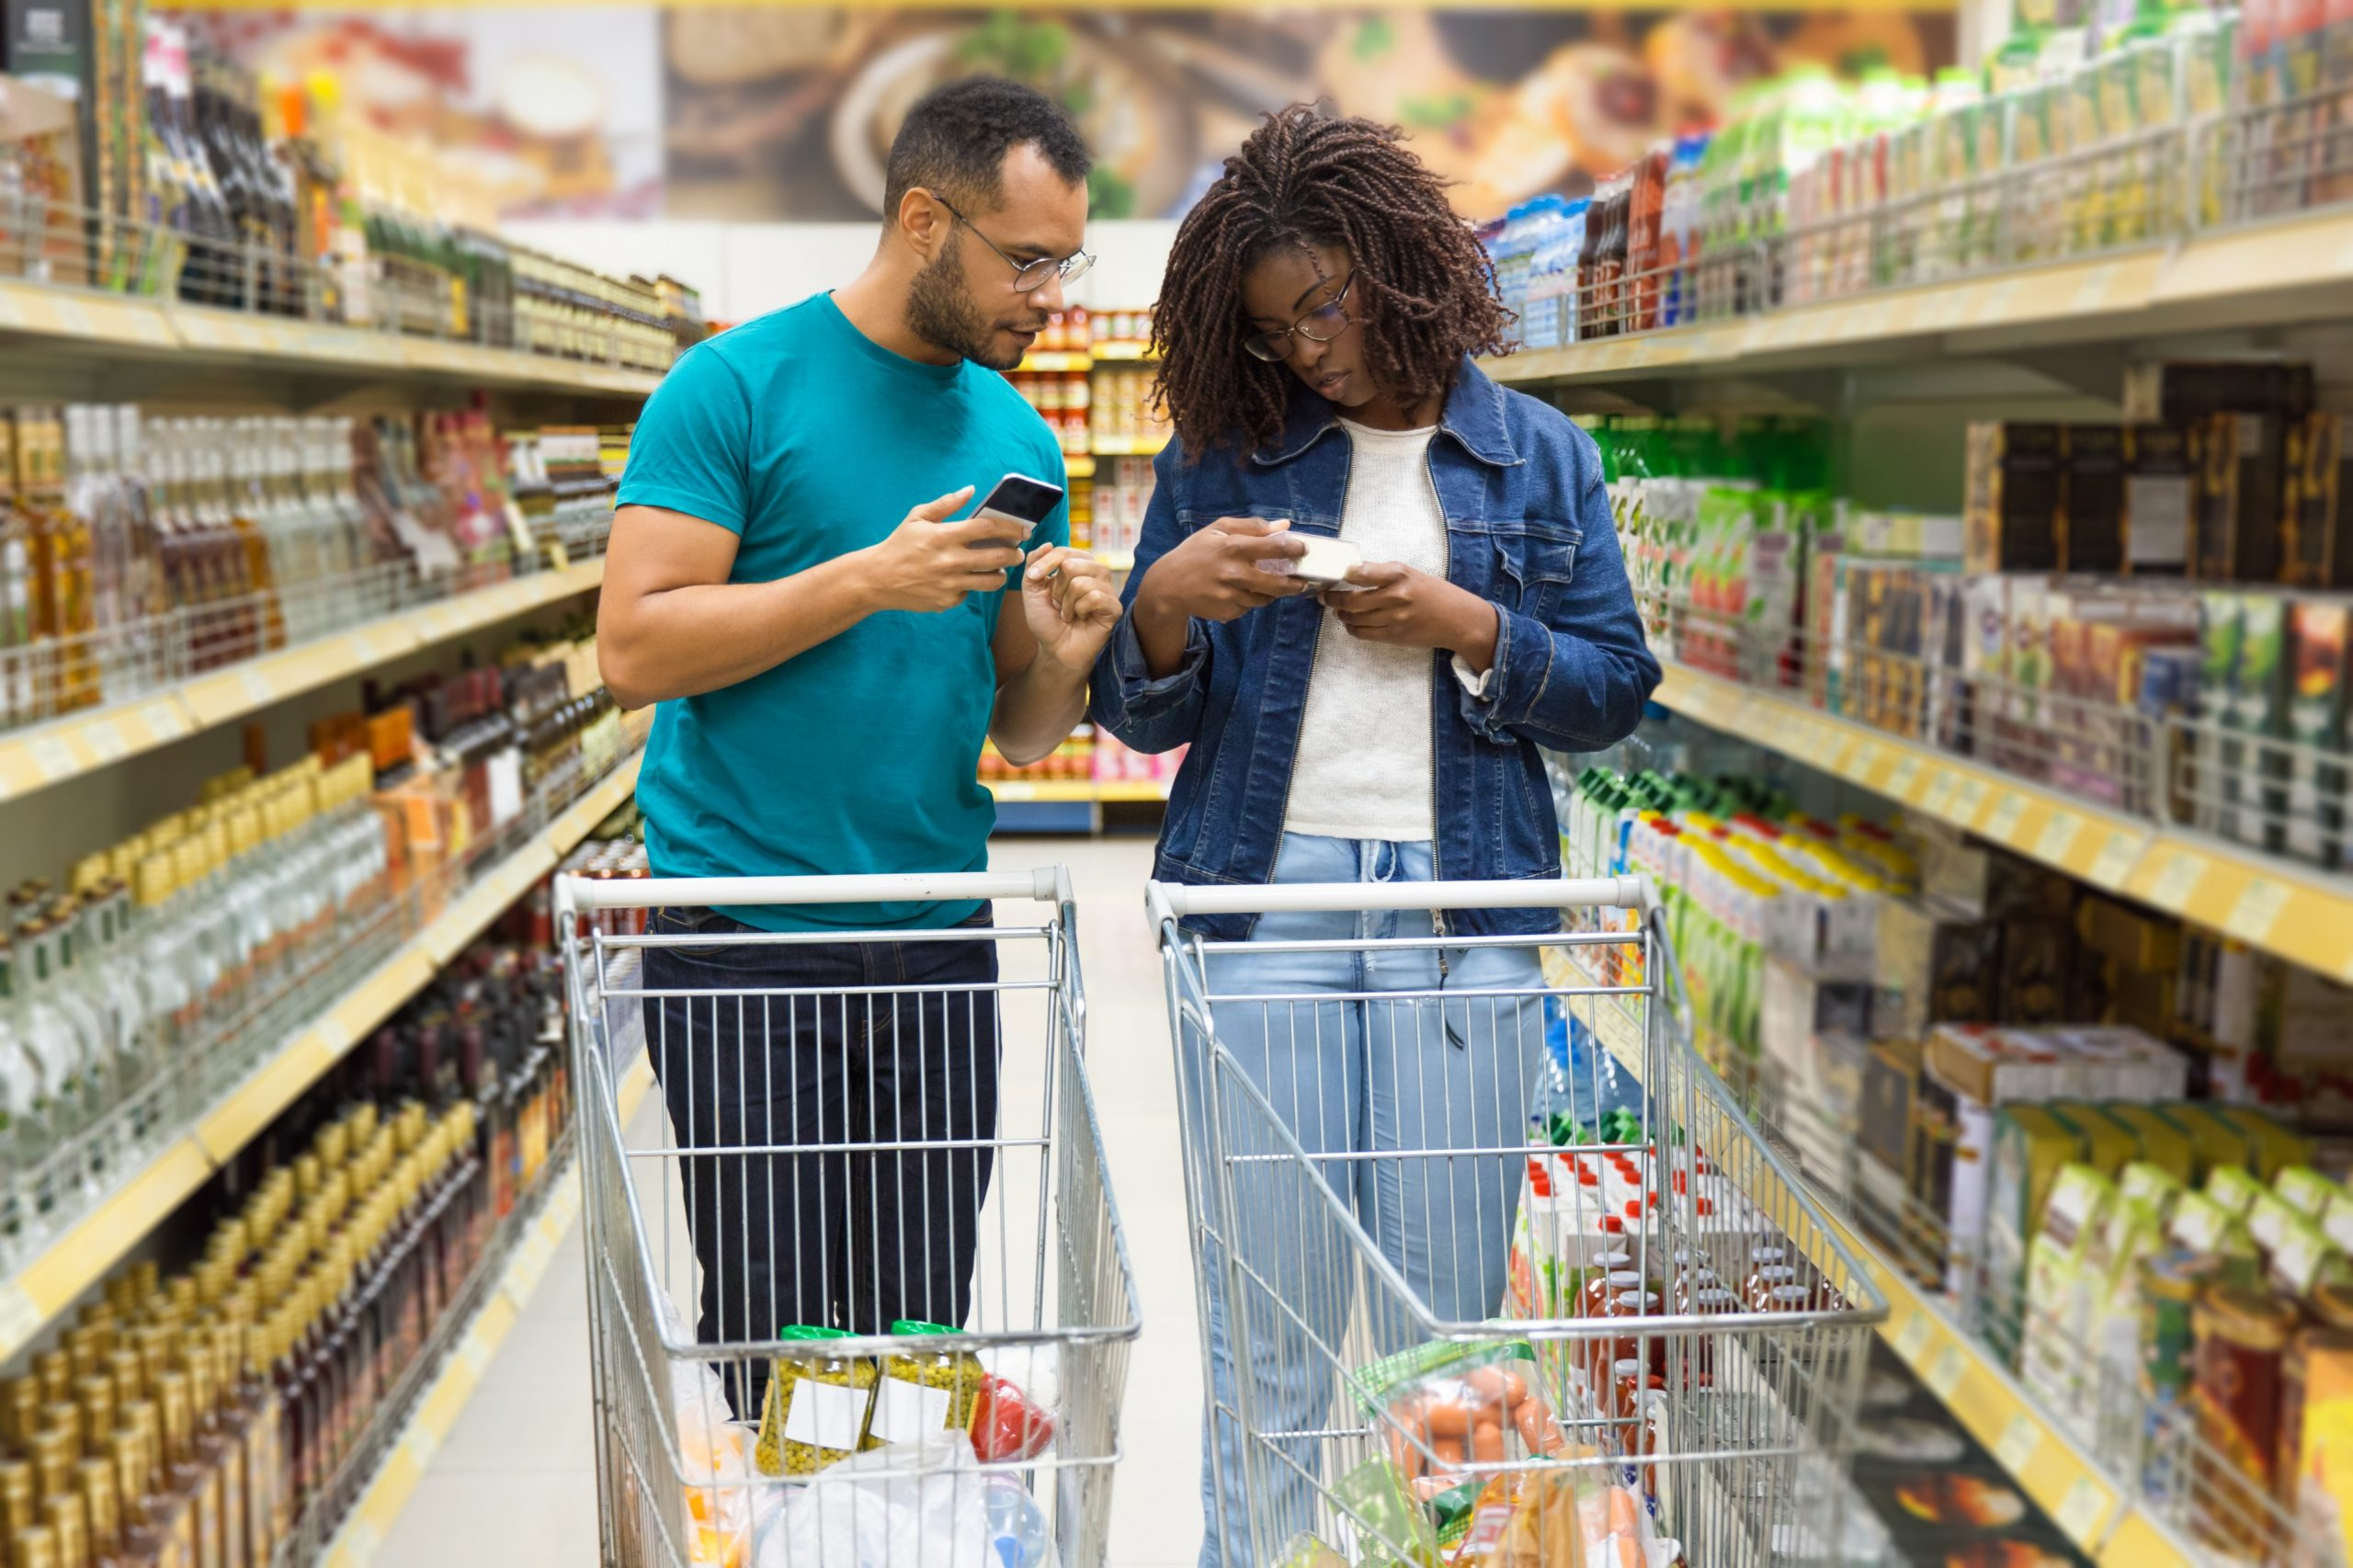 """USDA Decides It's Time To Talk """"Healthy"""" On Food Labels: Implications For Industry And Claims"""